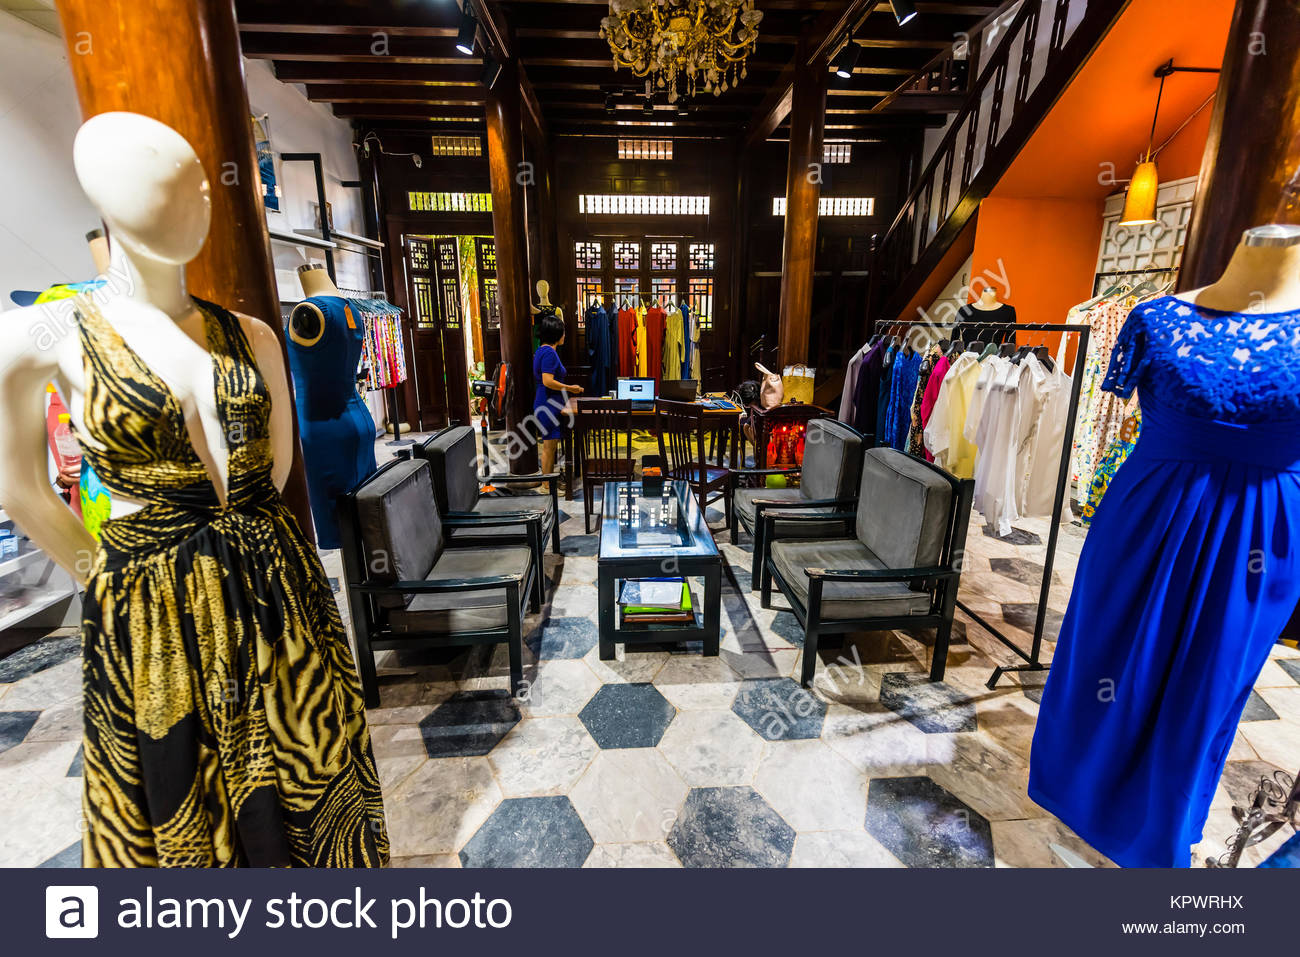 Yaly Couture, the most prestigious bespoke tailor and shoemaker in Hoi An, Vietnam. - Stock Image